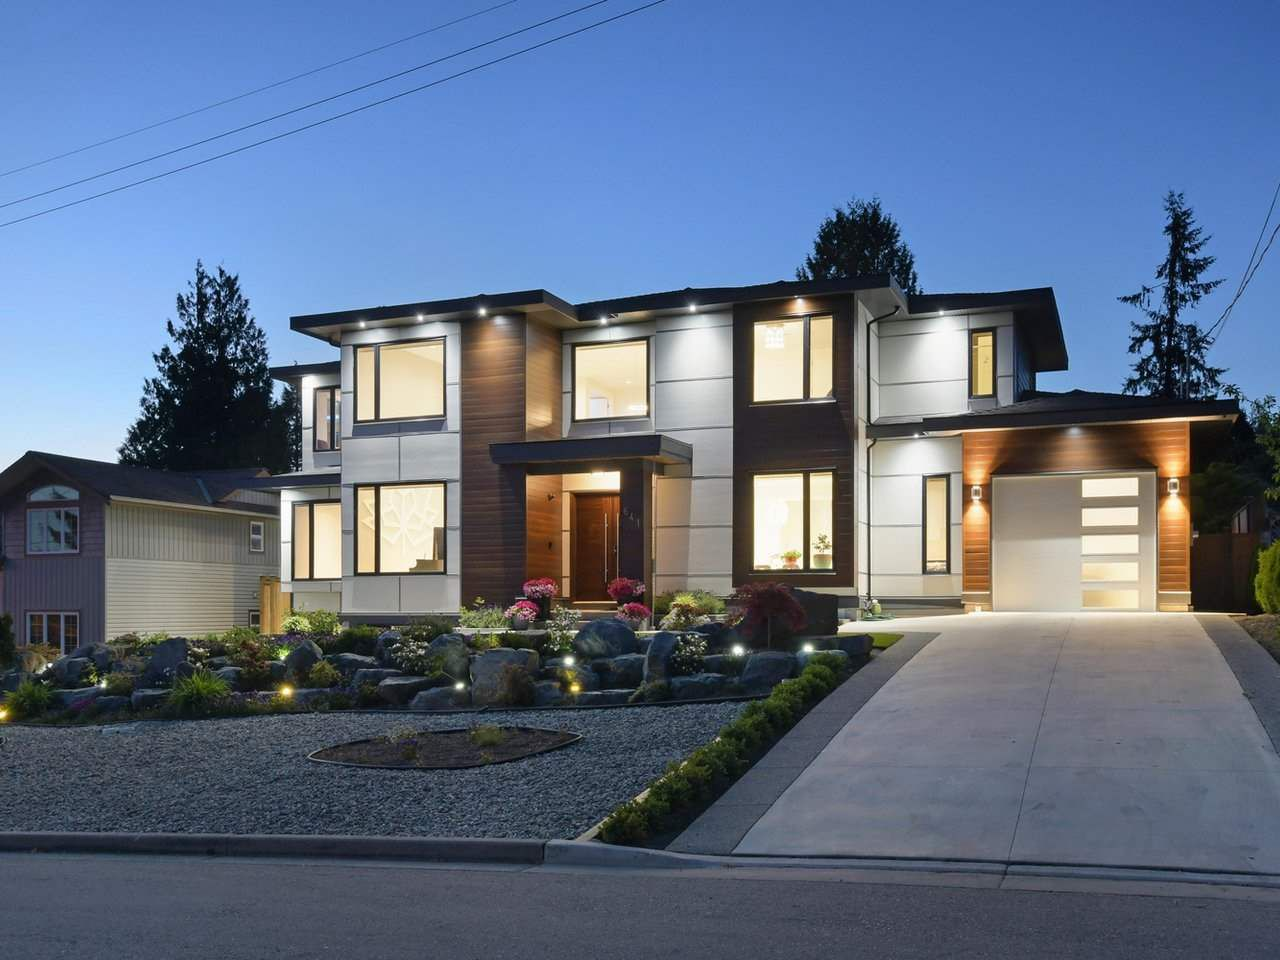 Main Photo: 641 MADORE Avenue in Coquitlam: Coquitlam West House for sale : MLS®# R2367943